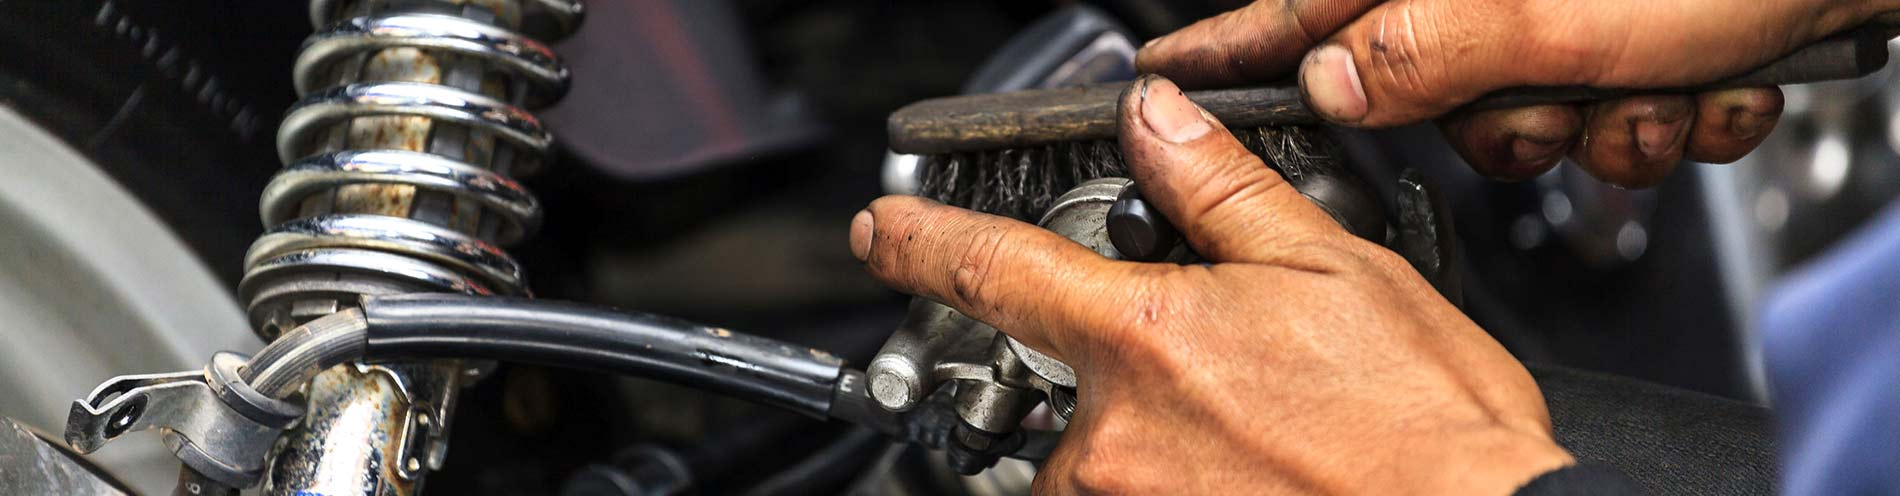 motorbike repairs servicing mot london